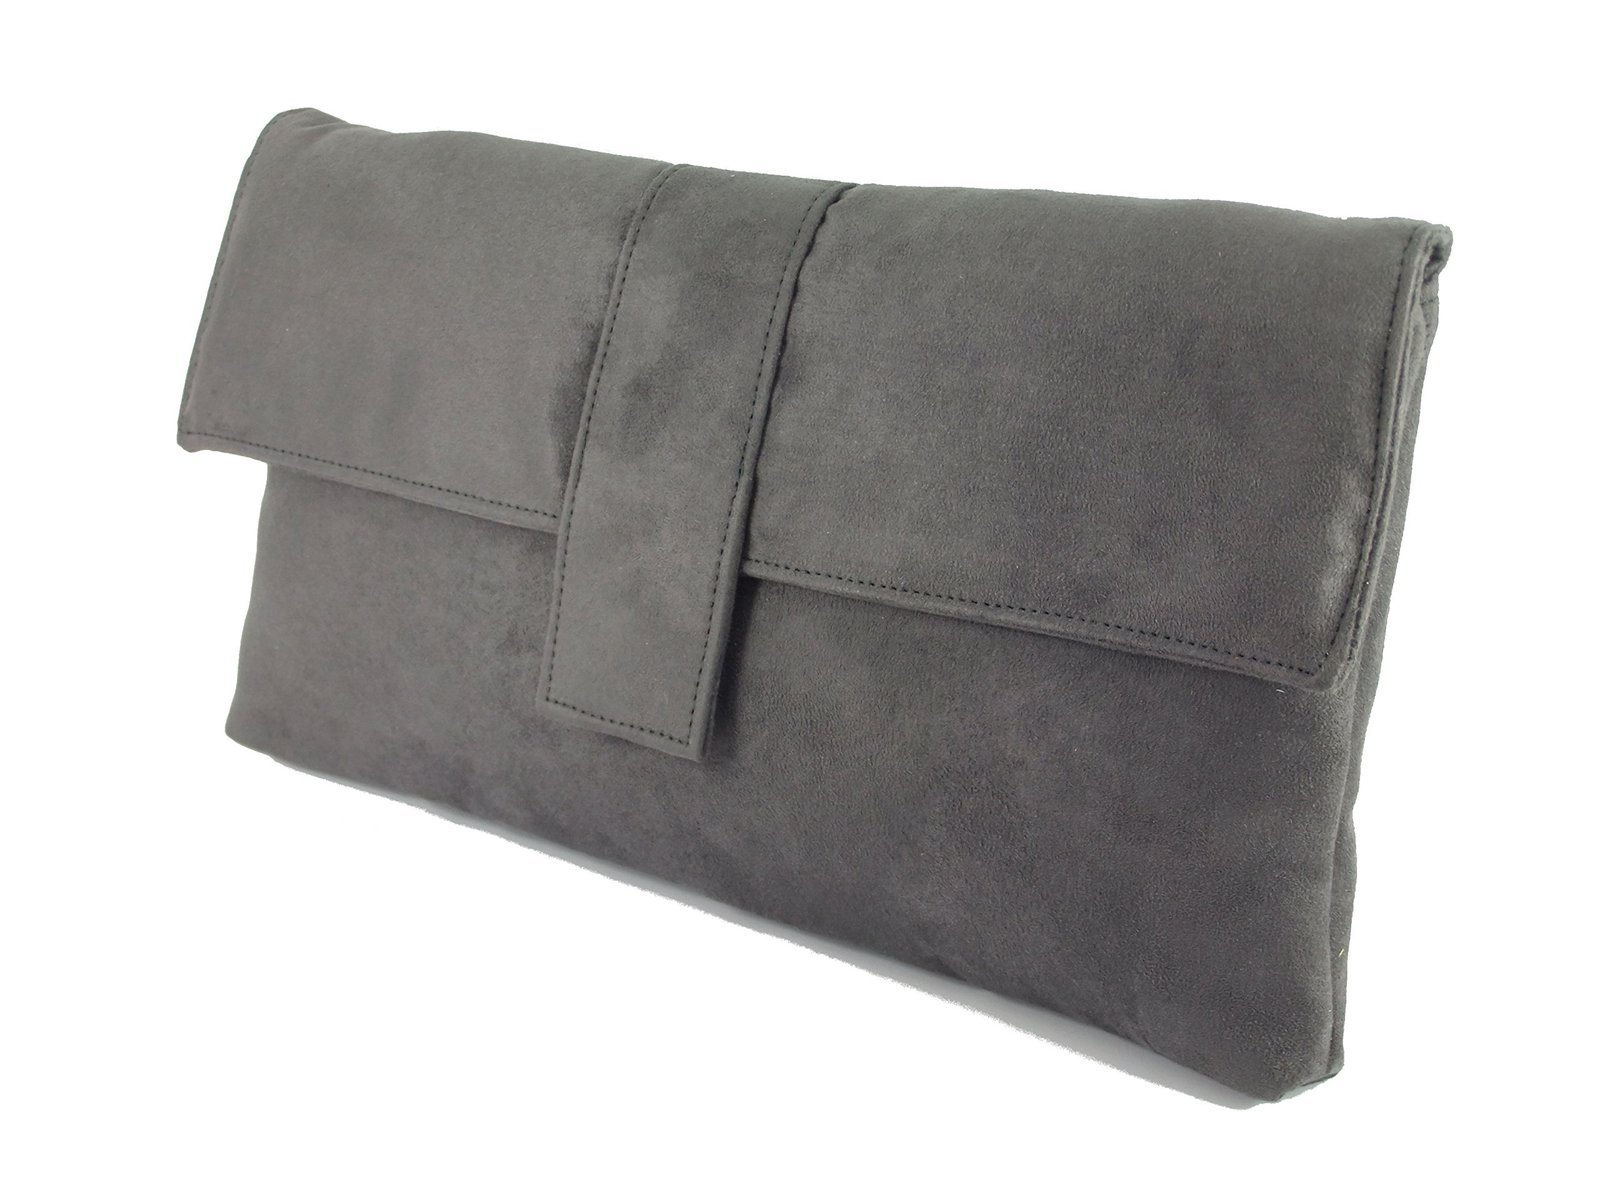 Loni Womens Fab Large Faux Suede Clutch Bag/Shoulder Bag In Charcoal Grey